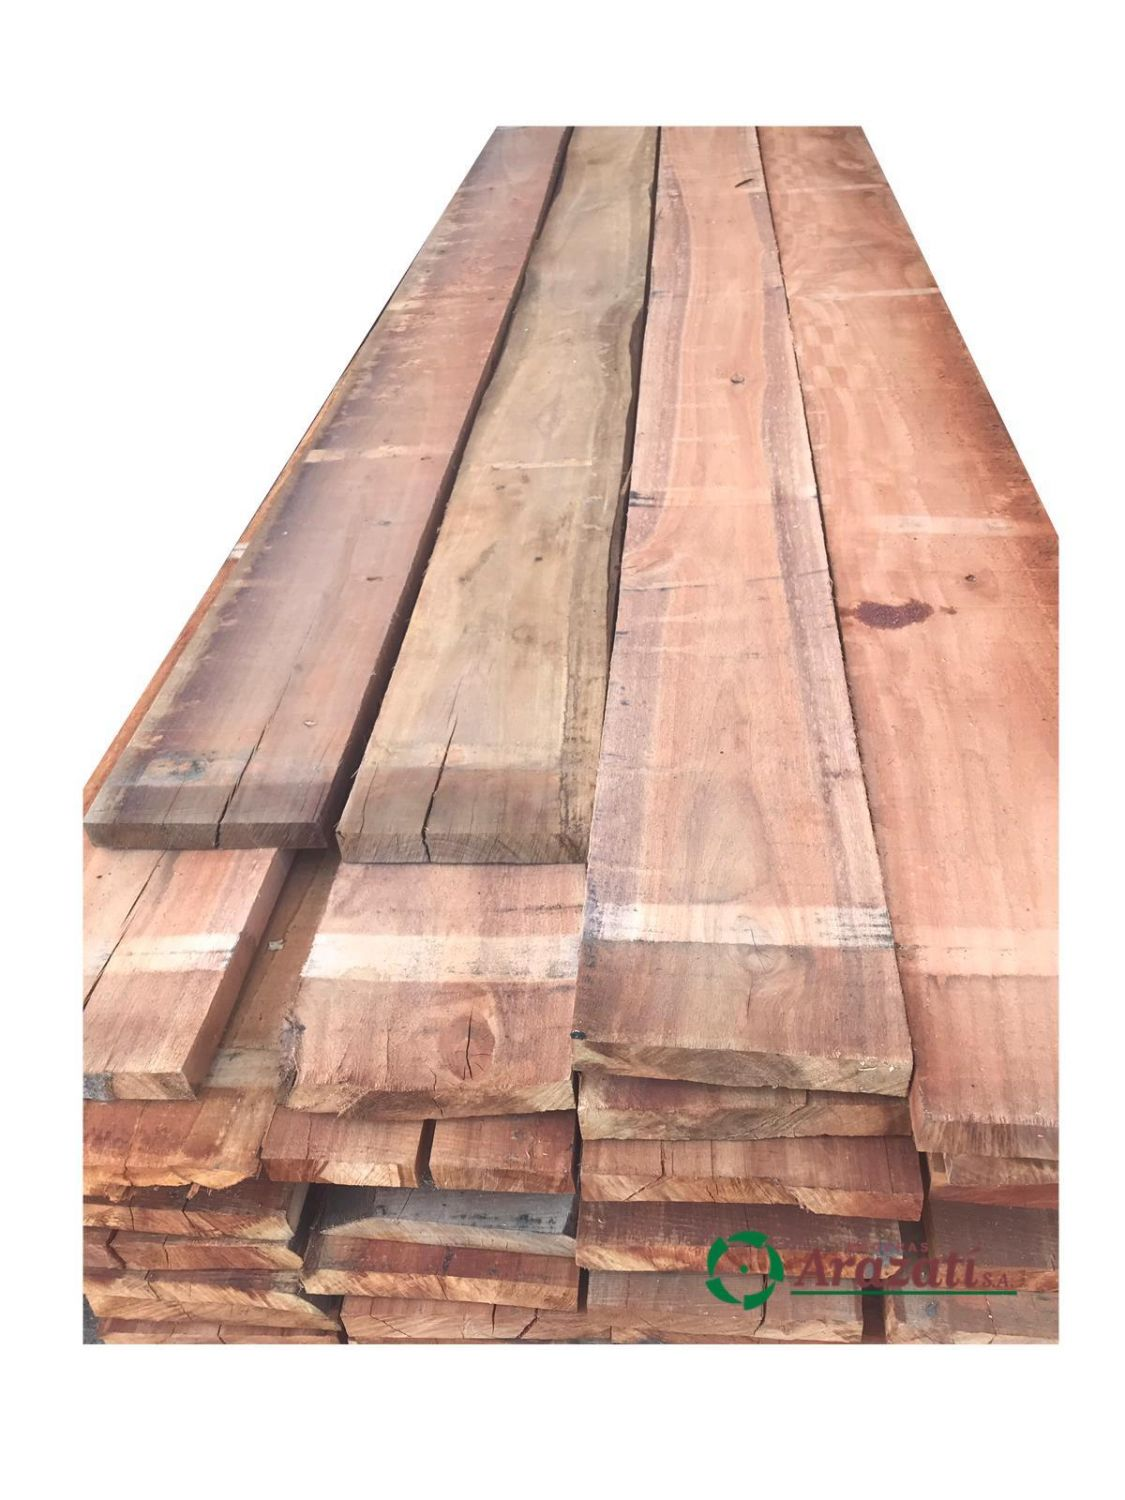 Tabla eucalyptus colorado 1,5x6 en 3,60m